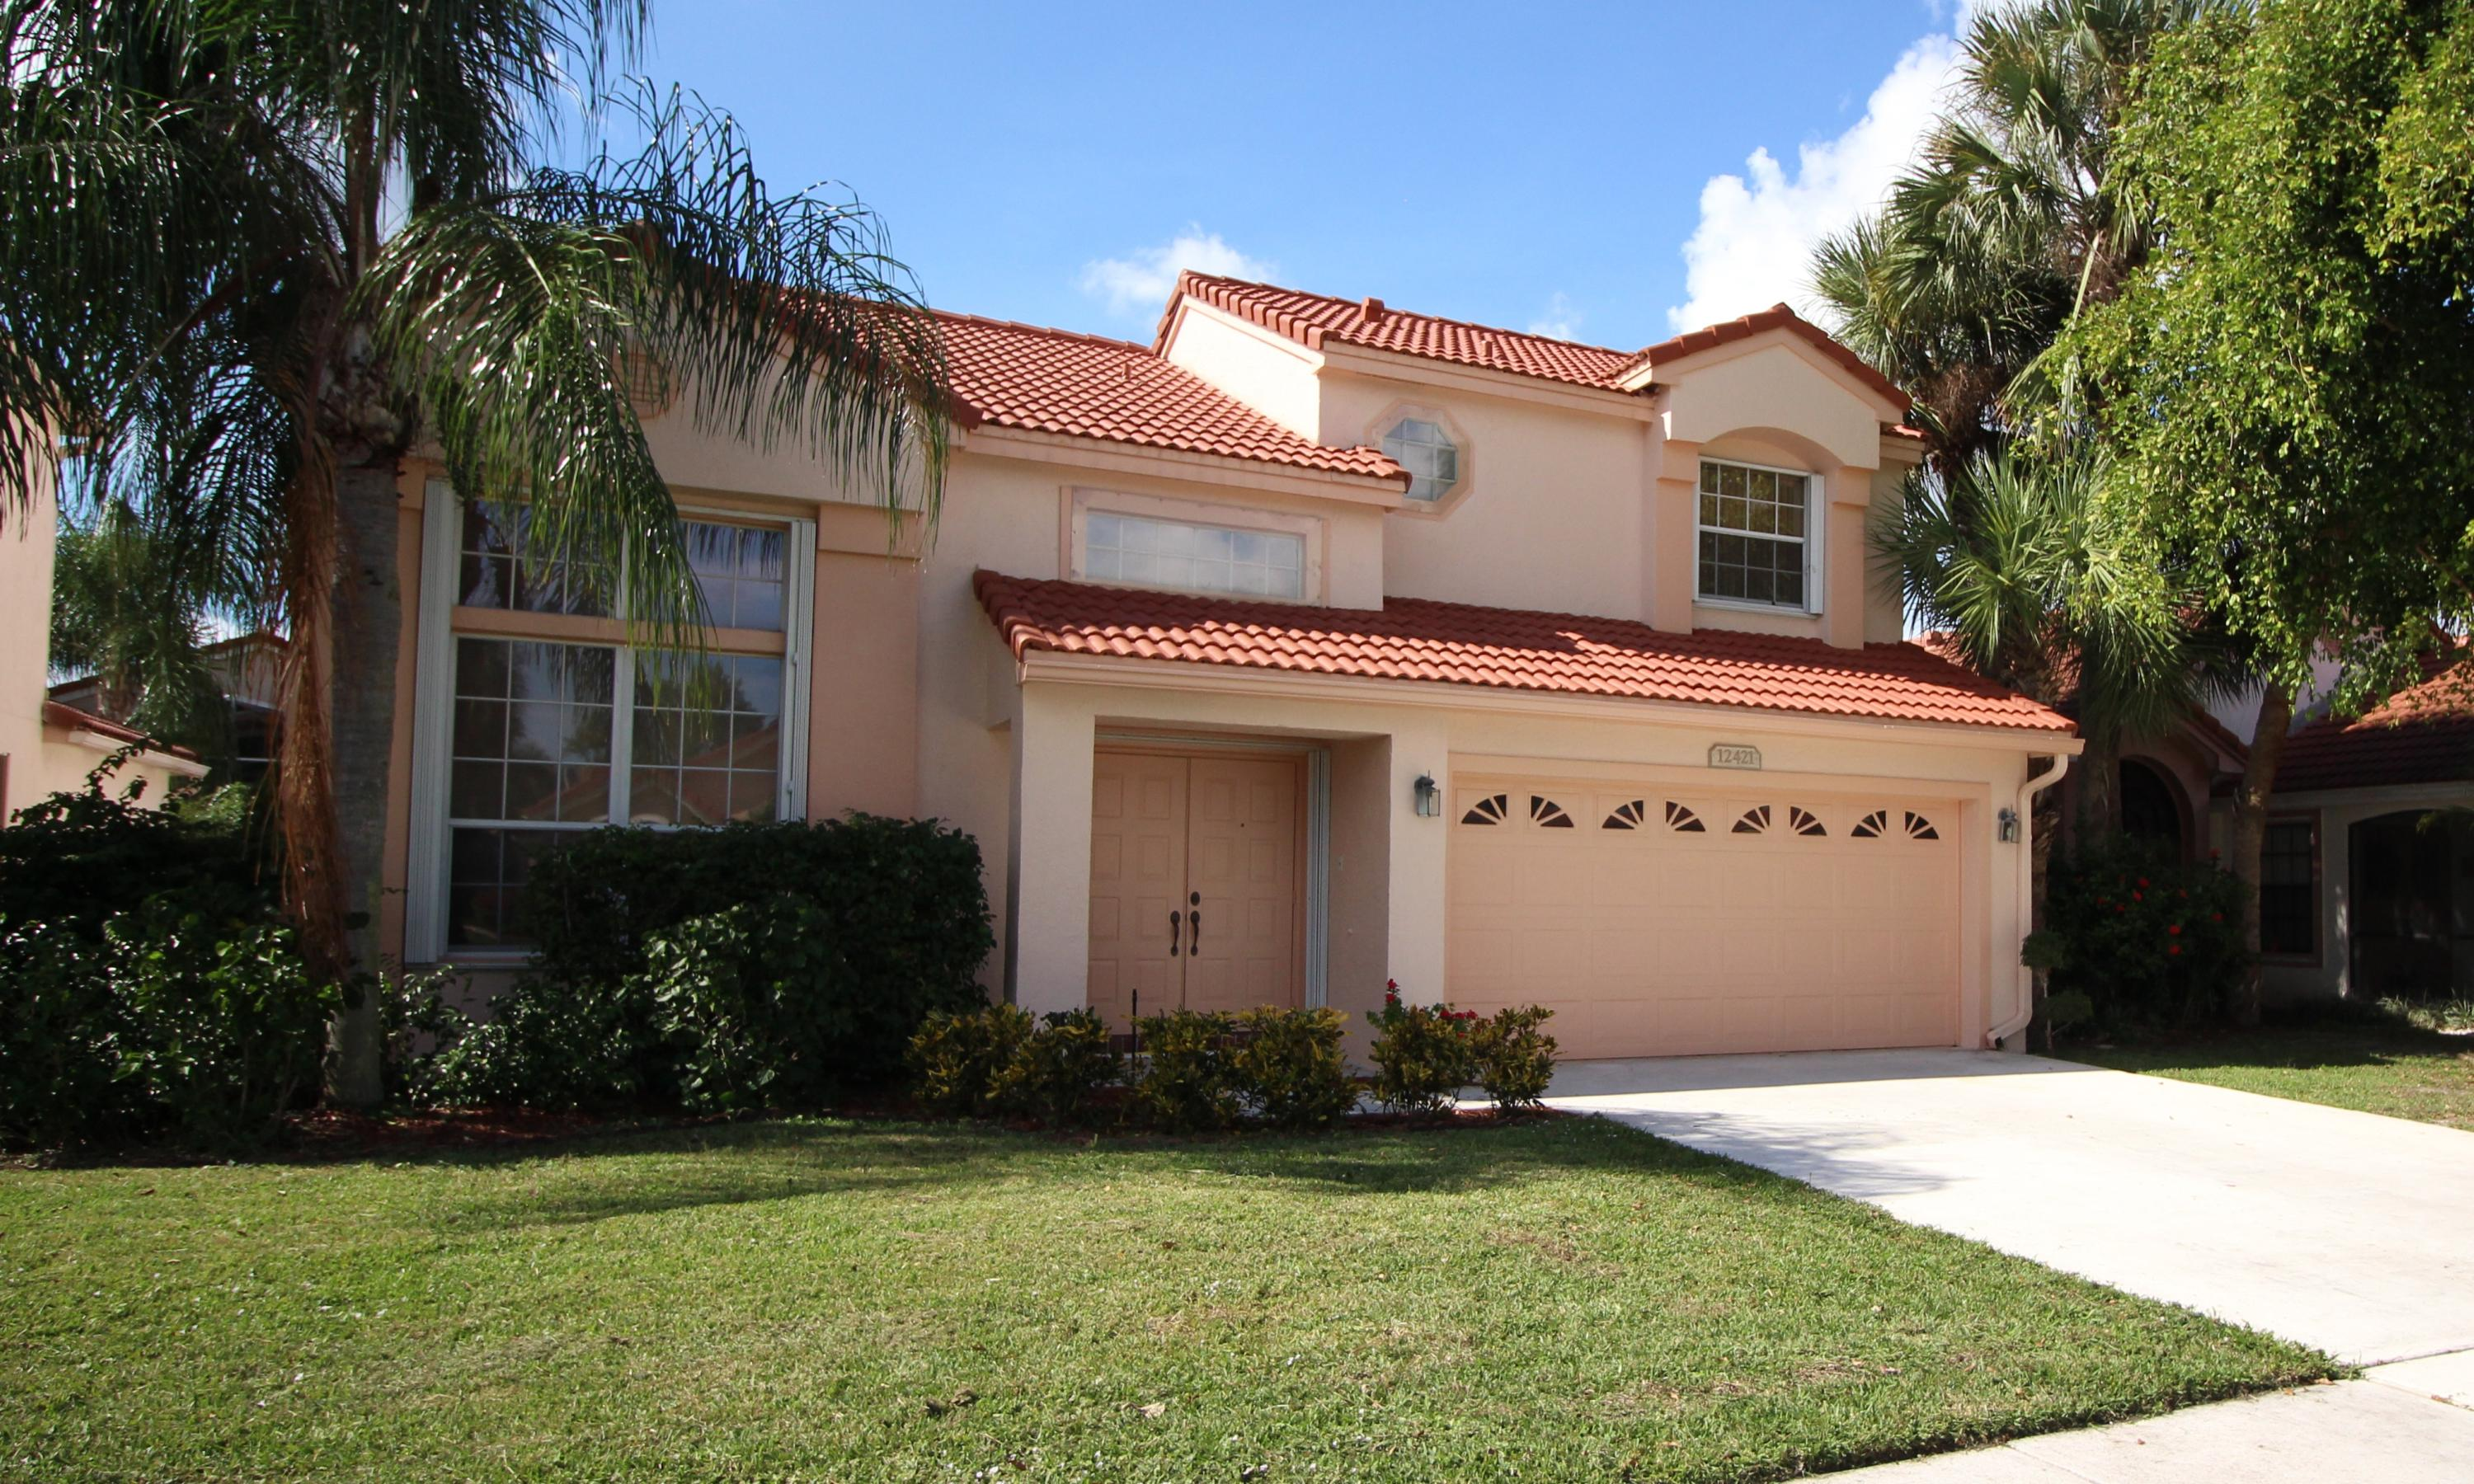 7281 Kea Lani Drive Boynton Beach 33437 - photo